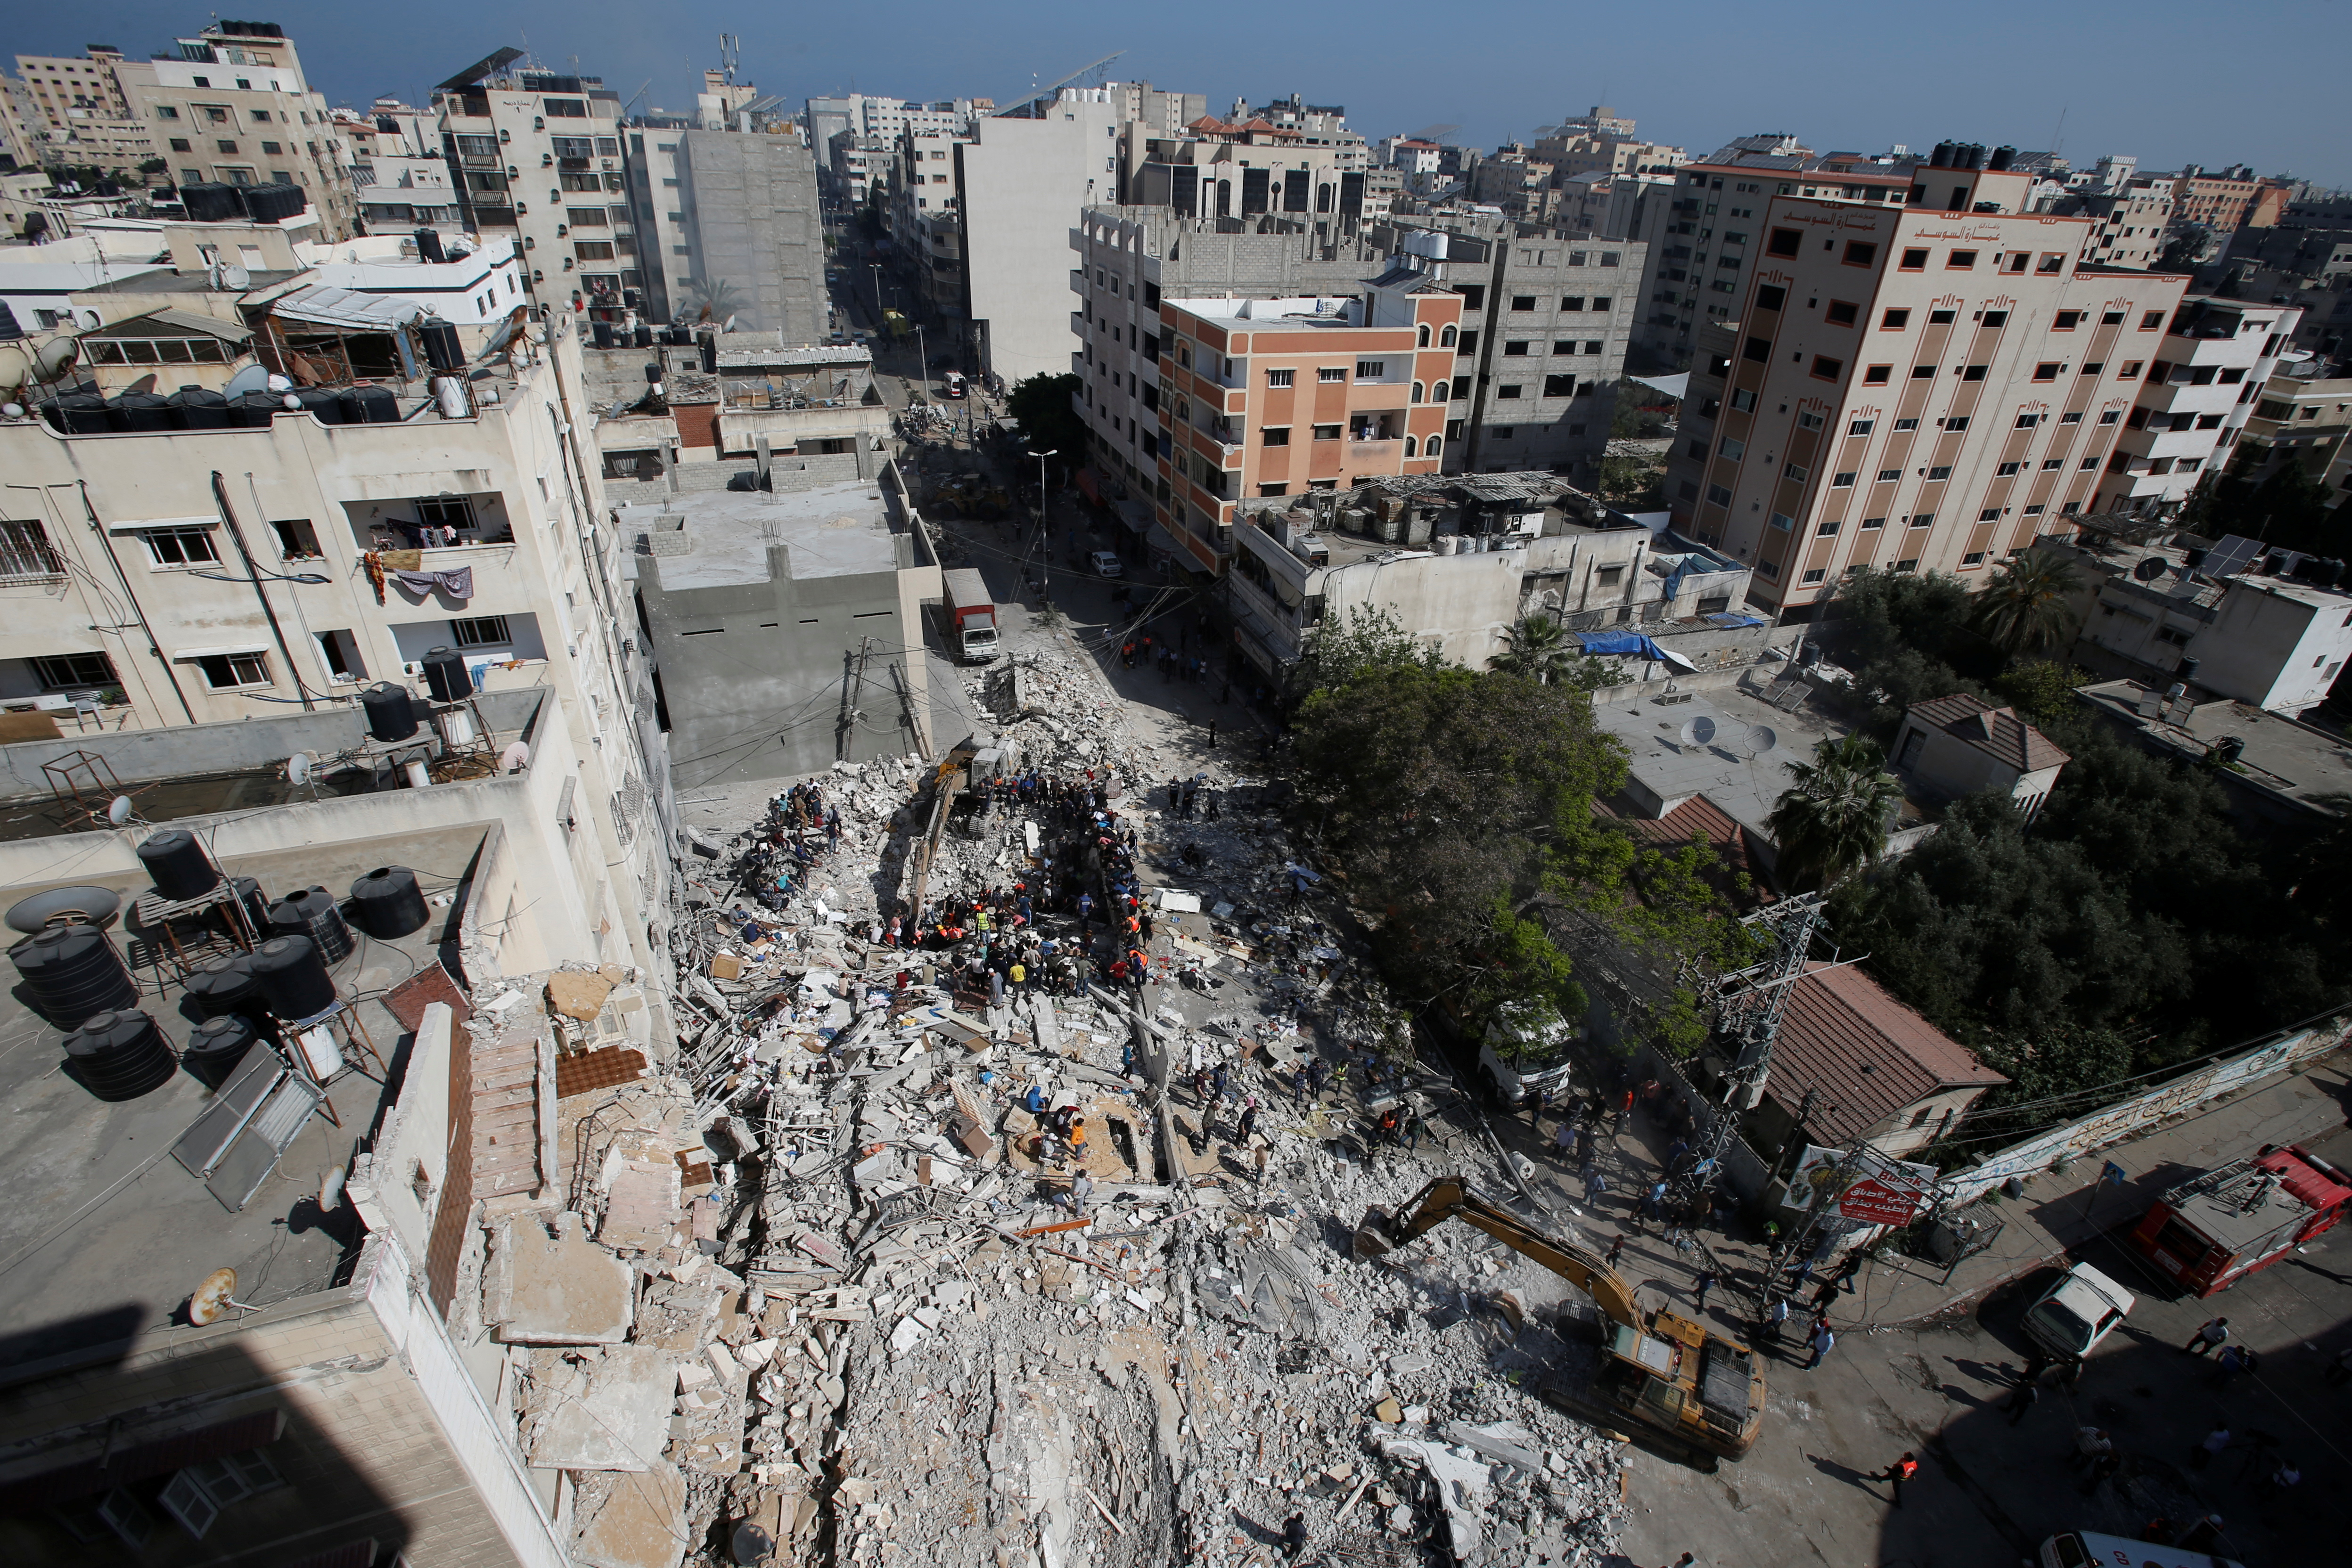 Rescuers search for people in the rubble of a building at the site of Israeli air strikes, in Gaza City May 16, 2021. REUTERS/Mohammed Salem